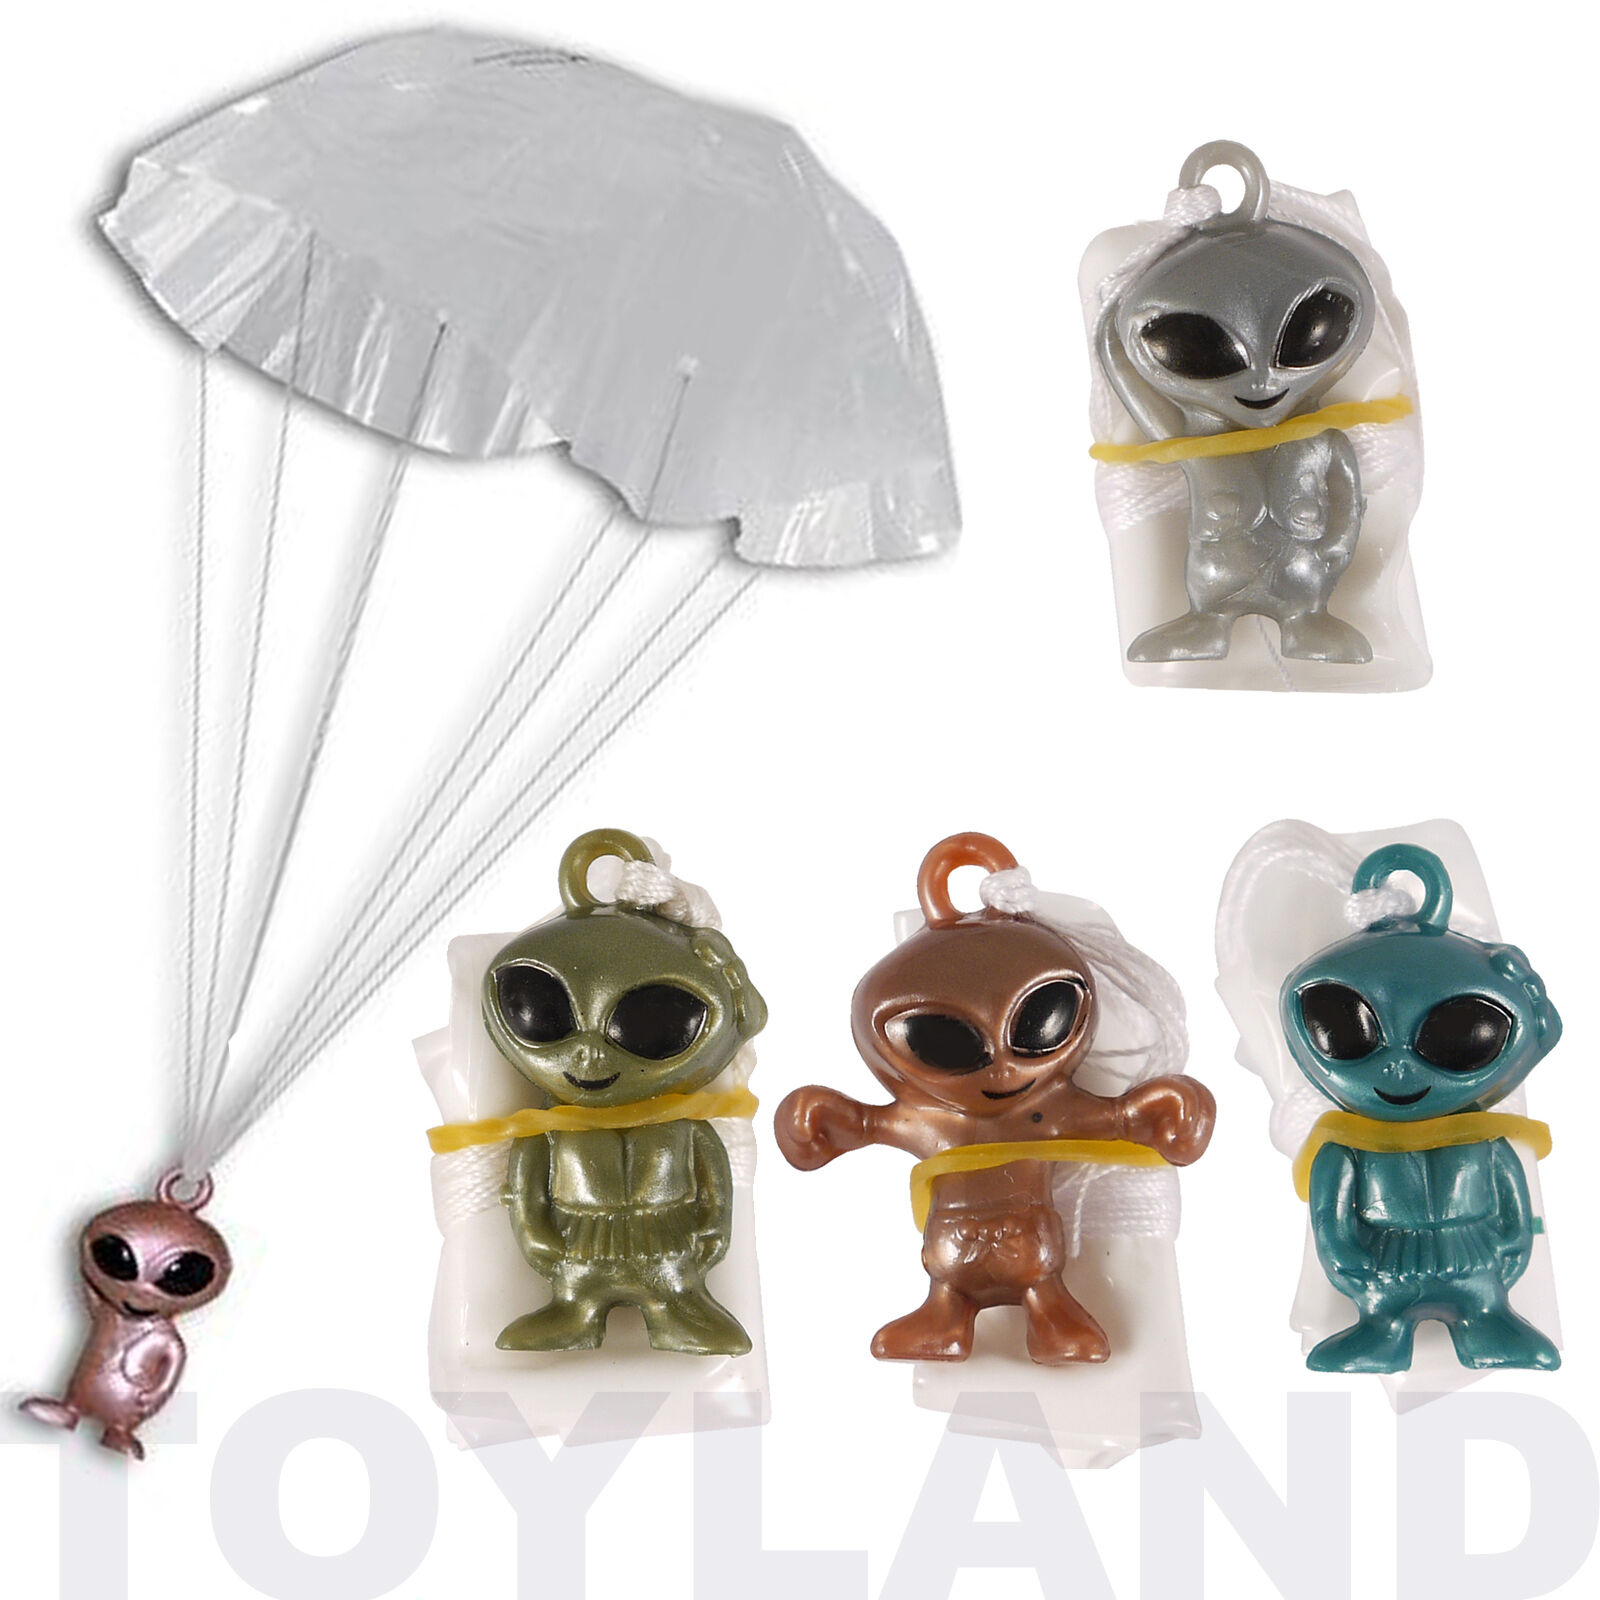 2 x MINI GALAXY SPACE ALIEN PARACHUTES BOYS TOY GIFT BIRTHDAY PARTY BAG FILLERS